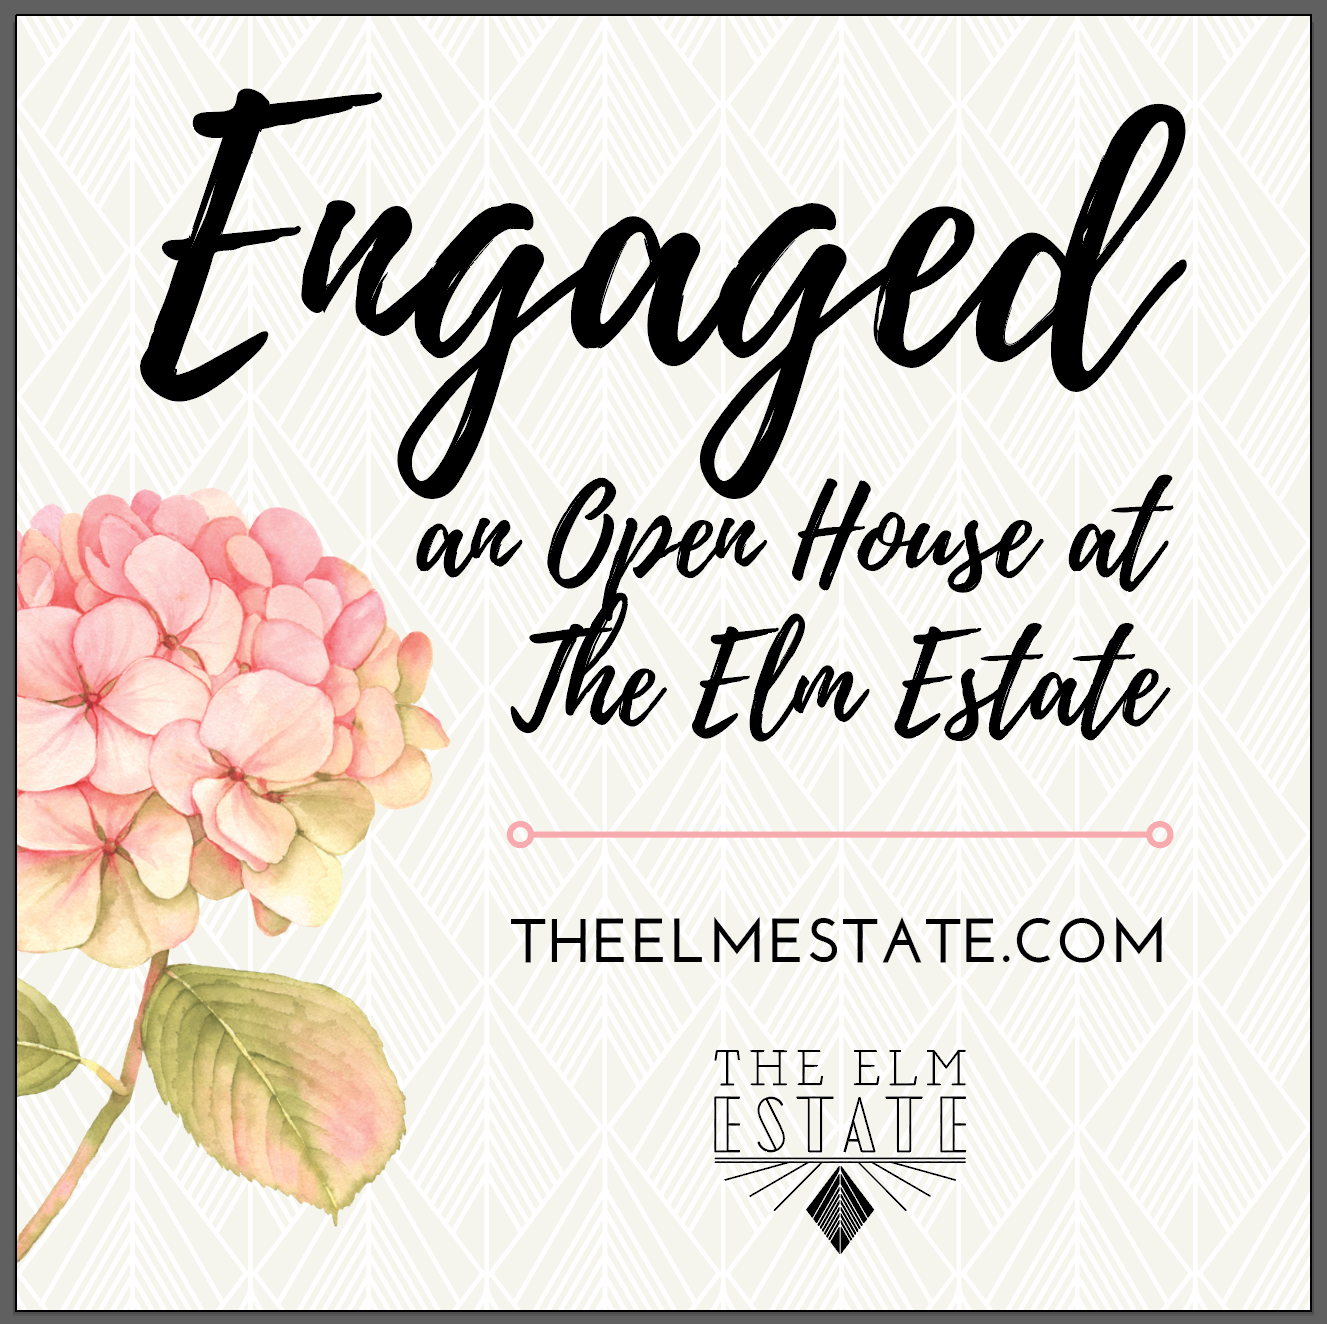 Engaged: An Open House at The Elm Estate